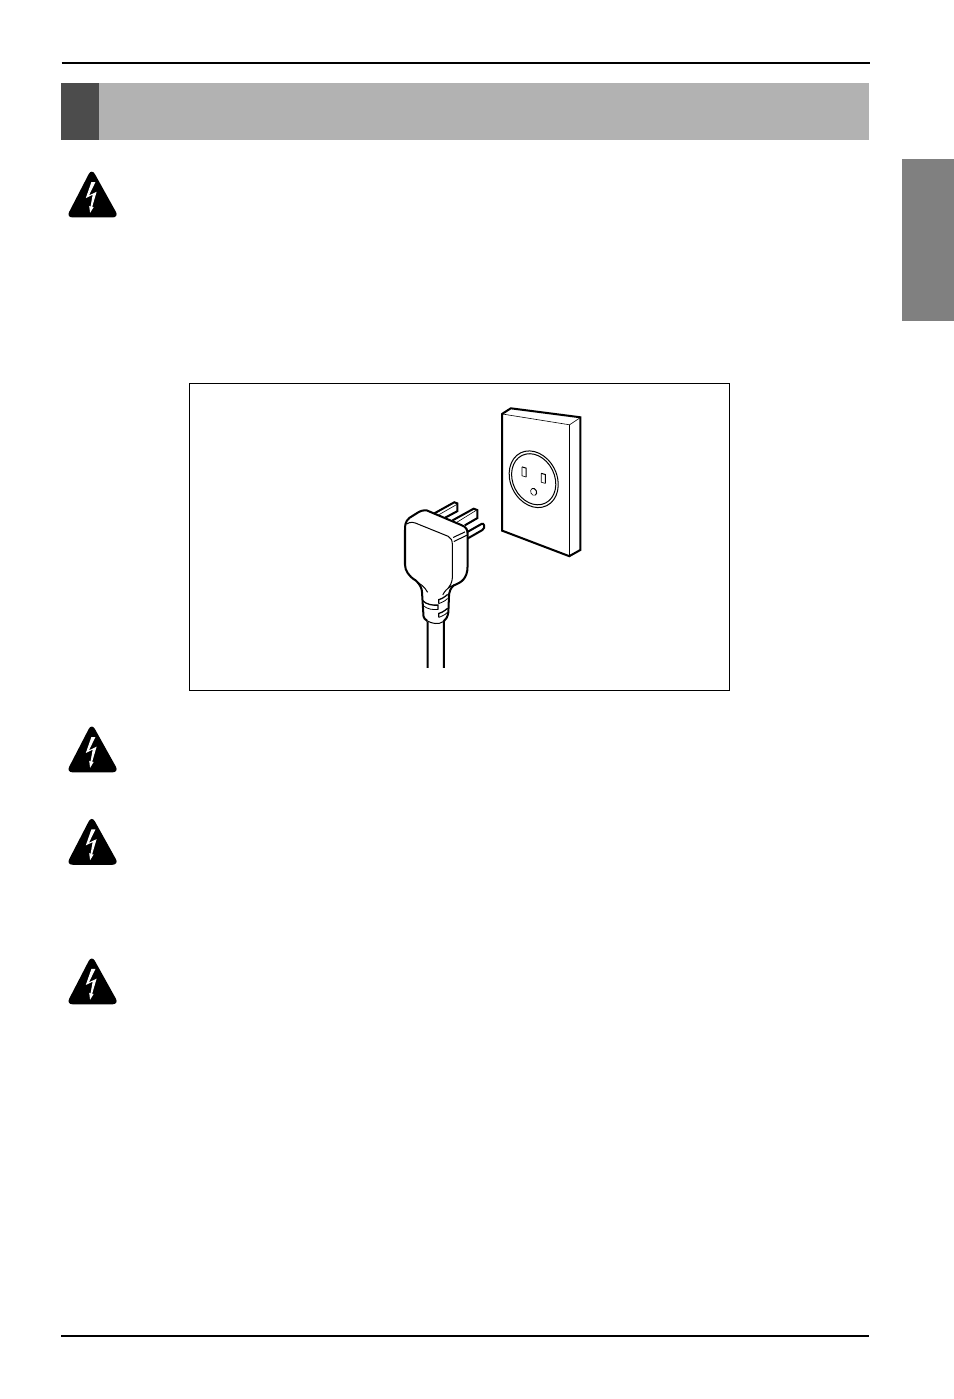 Electrical Safety Lg Lhd65ebl User Manual Page 9 32 House Wiring